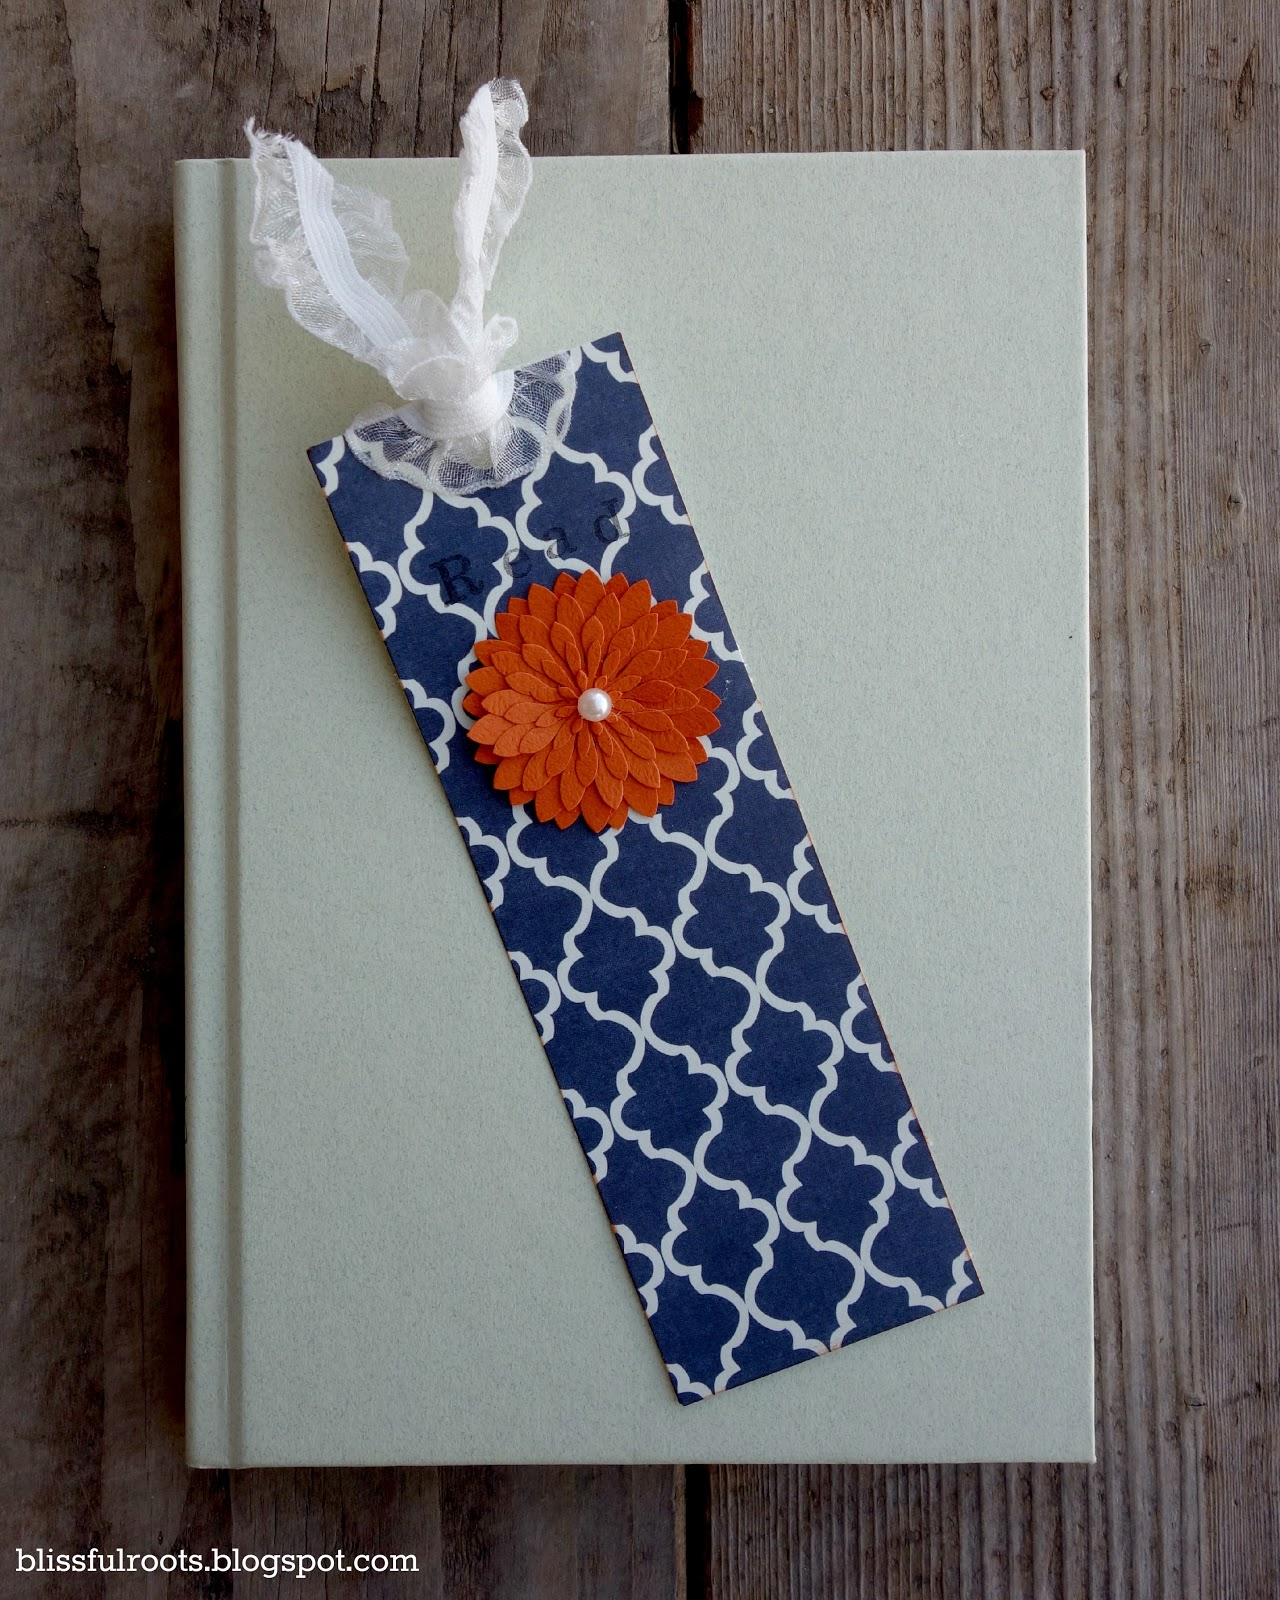 3 Easy Diy Storage Ideas For Small Kitchen: BLISSFUL ROOTS: DIY Bookmarks